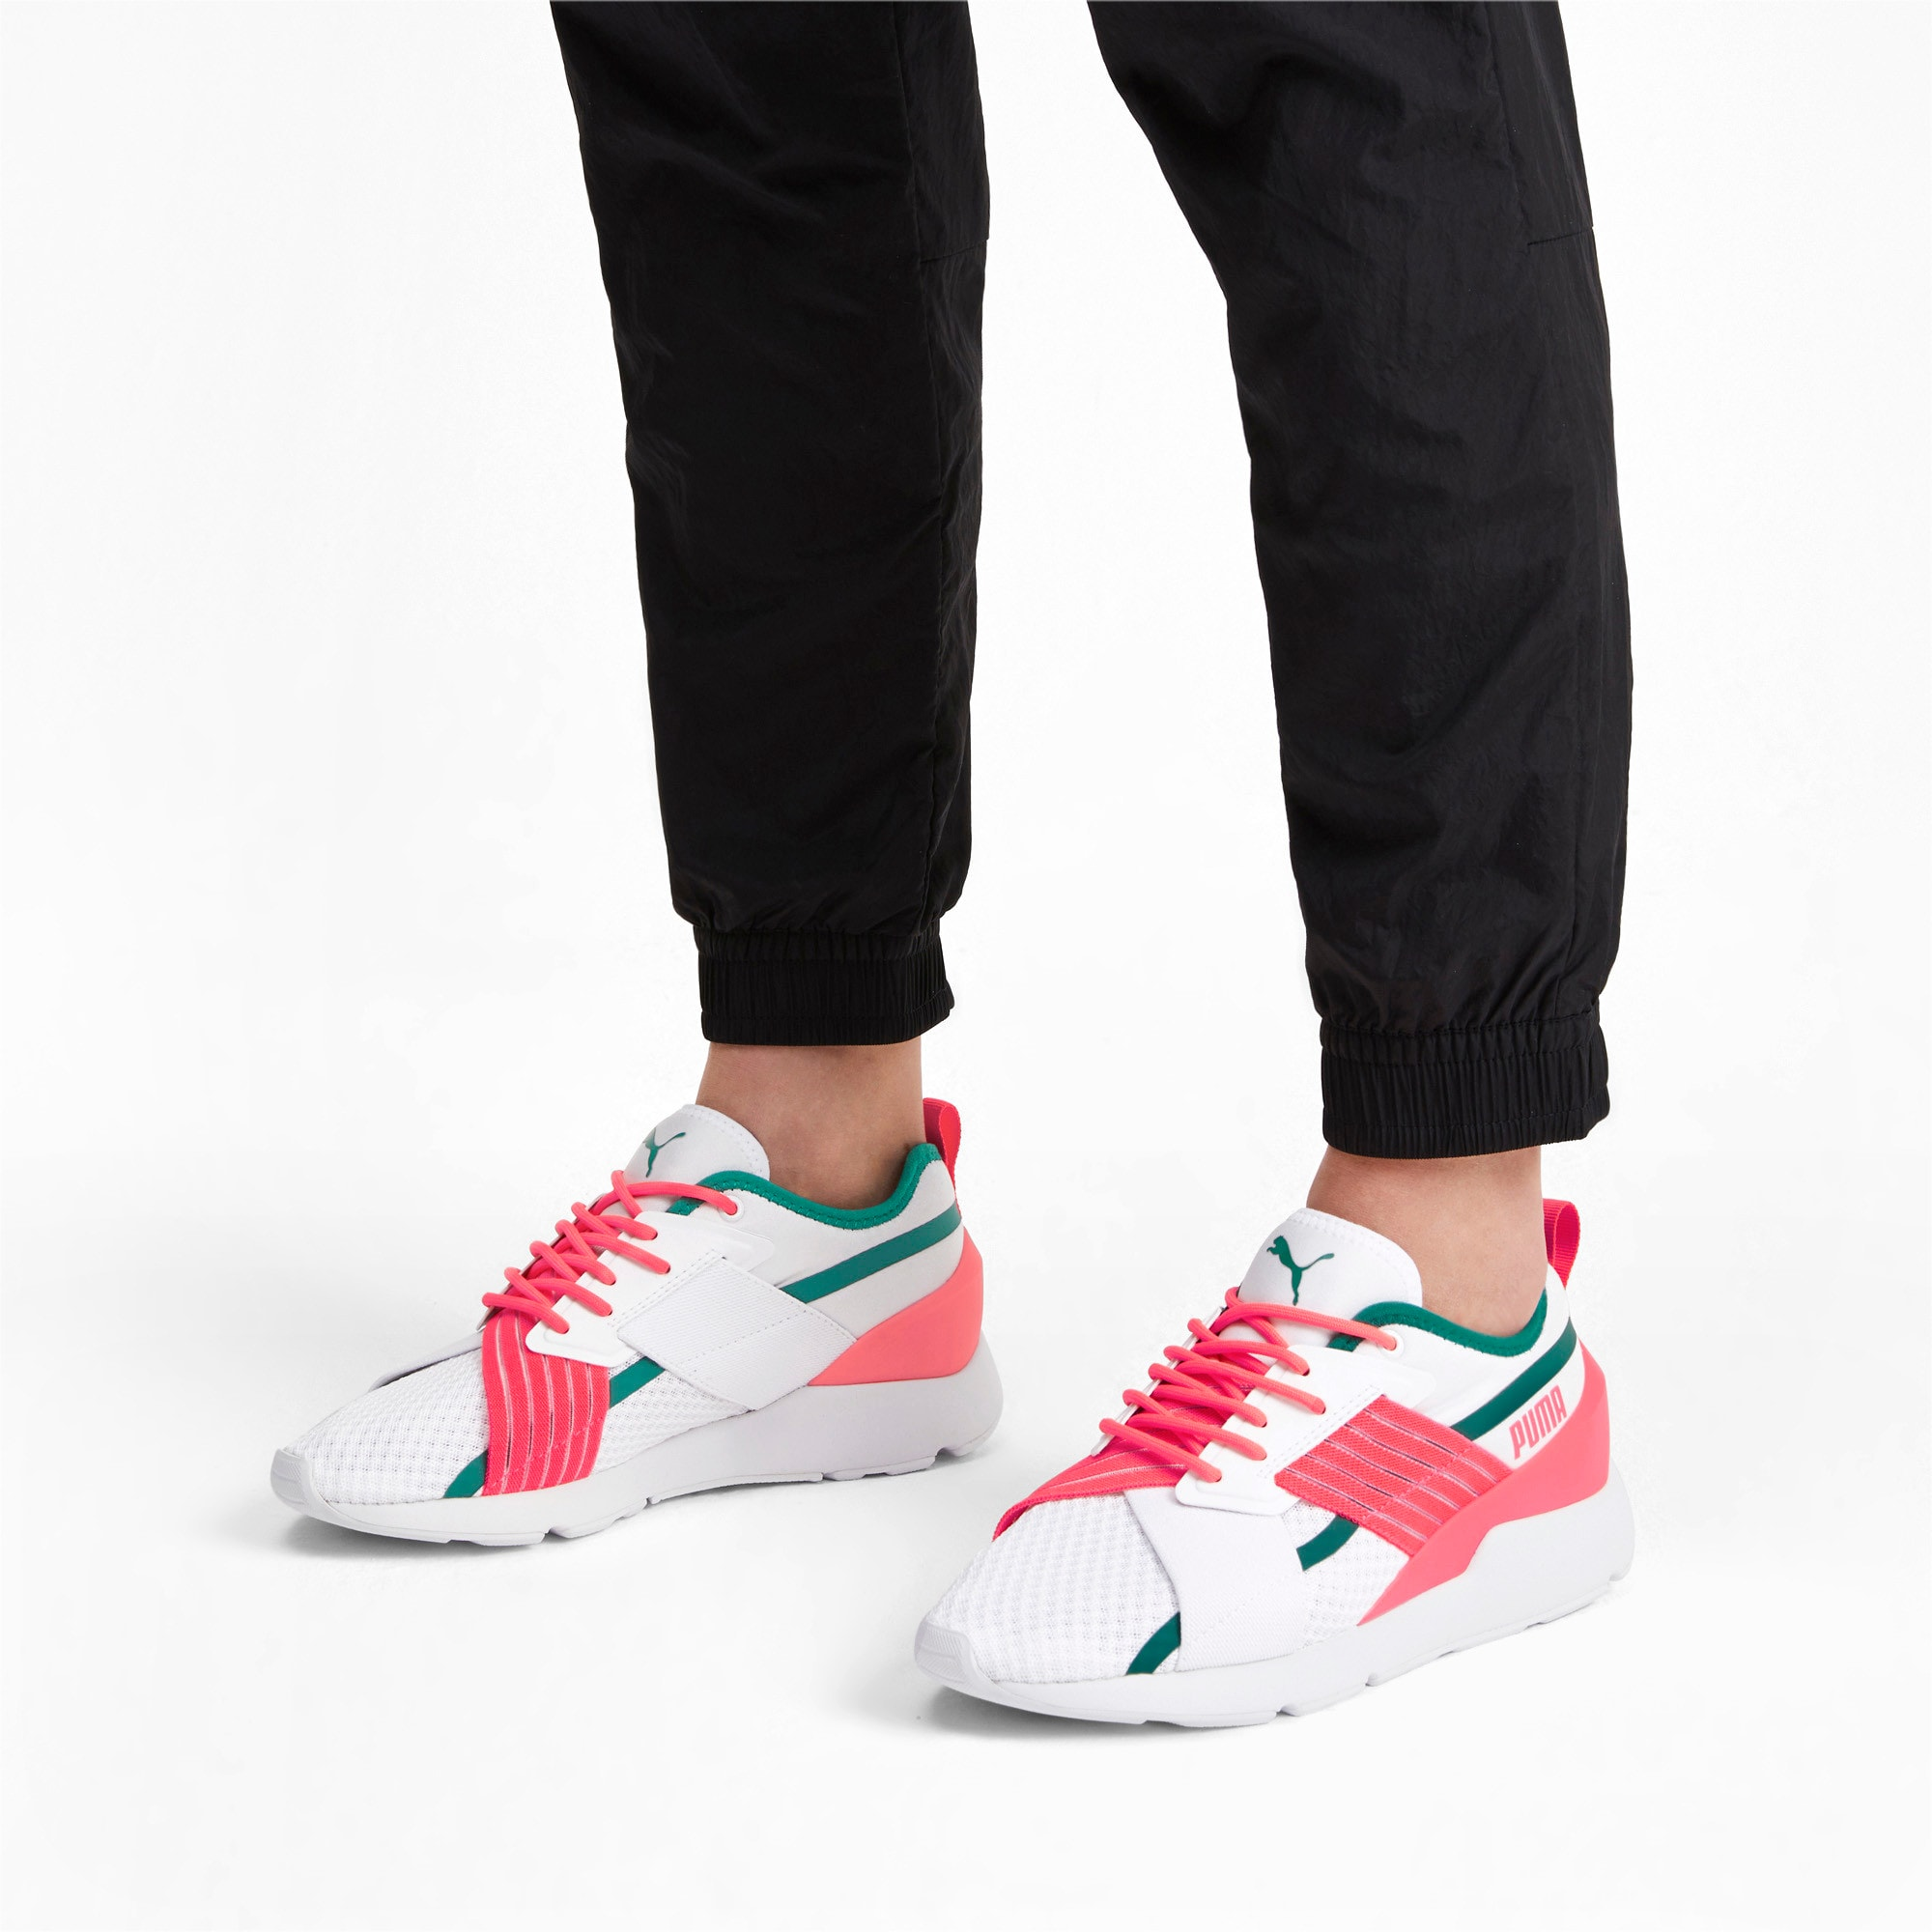 Thumbnail 2 of Muse X-2 Women's Trainers, Puma White-Pink Alert, medium-IND